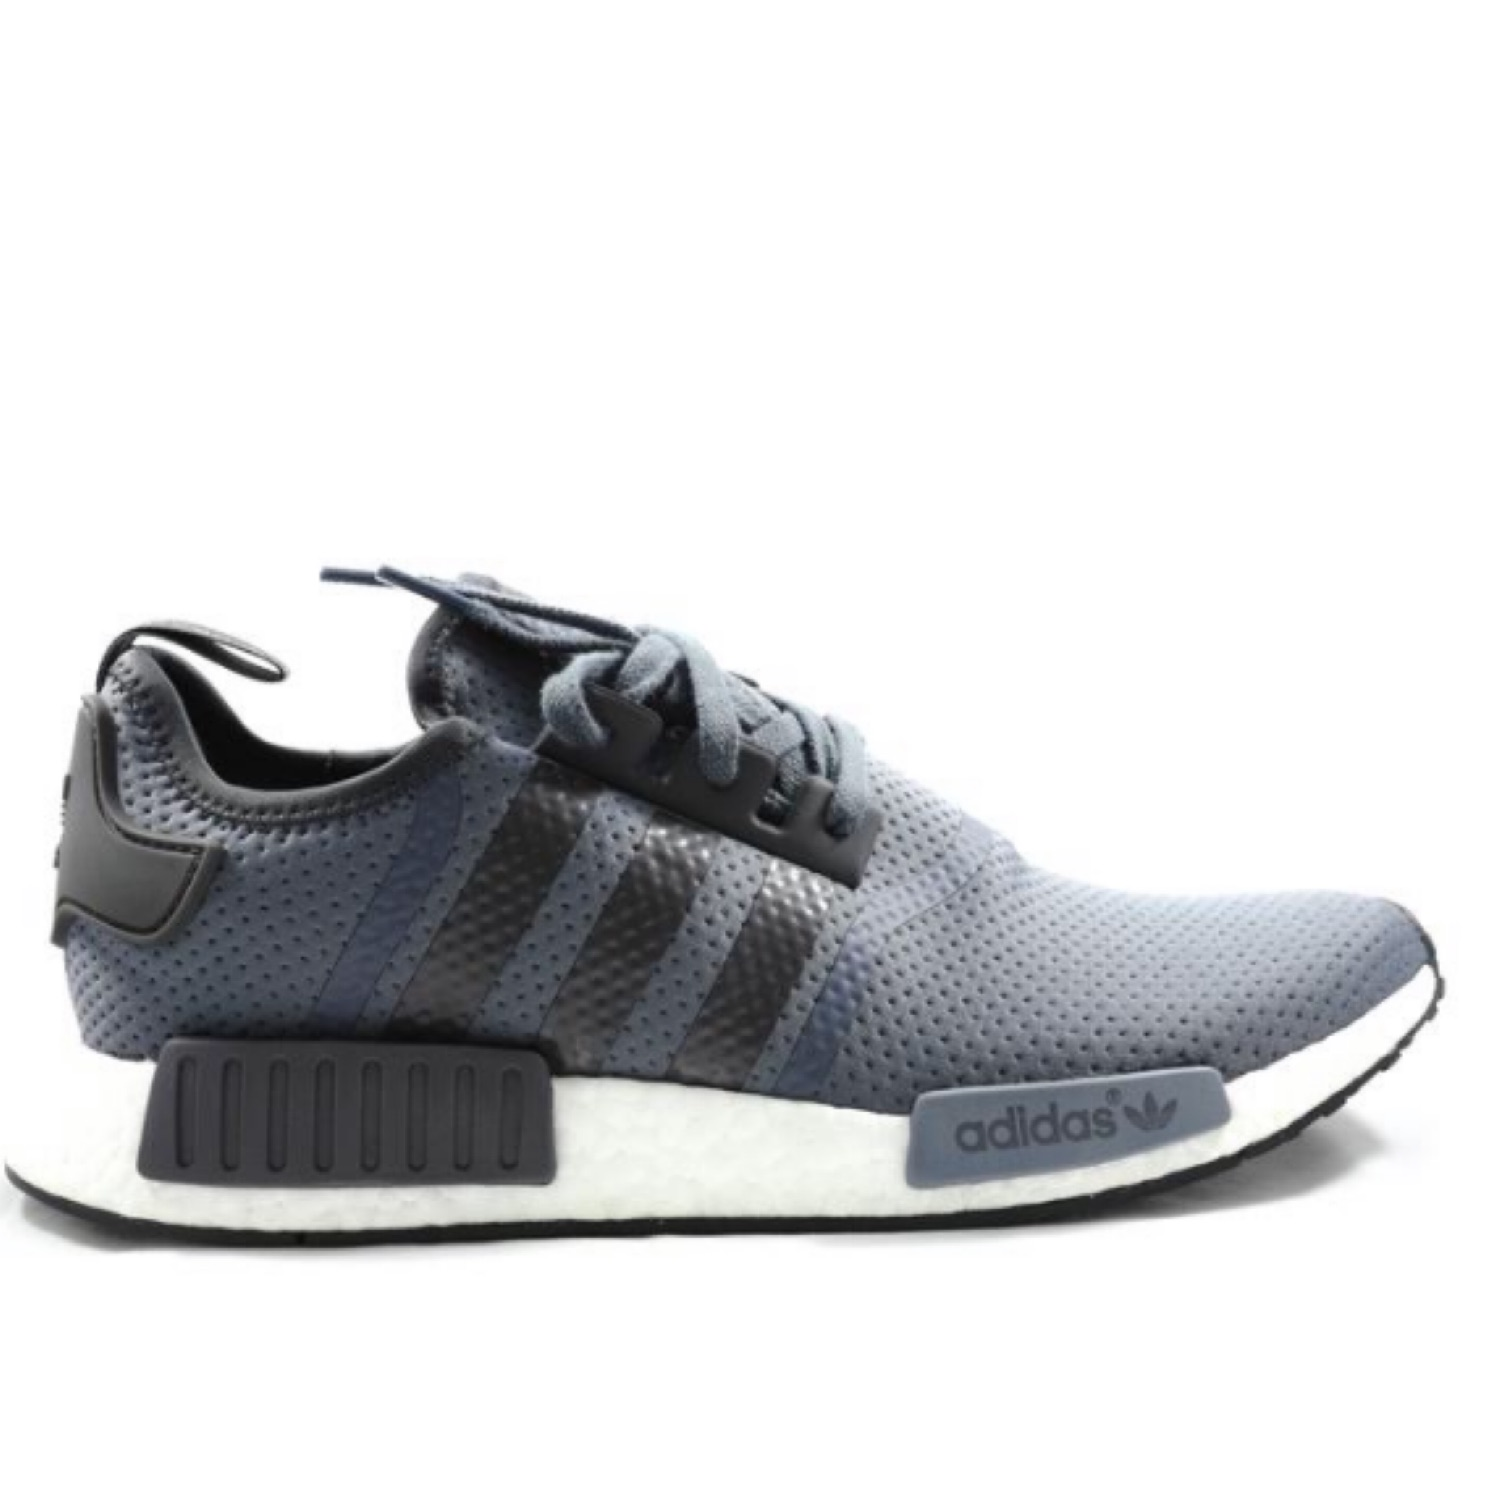 premium selection 7fa2f 087e7 Nmd R1 Jd Sports Grey Blue Mesh